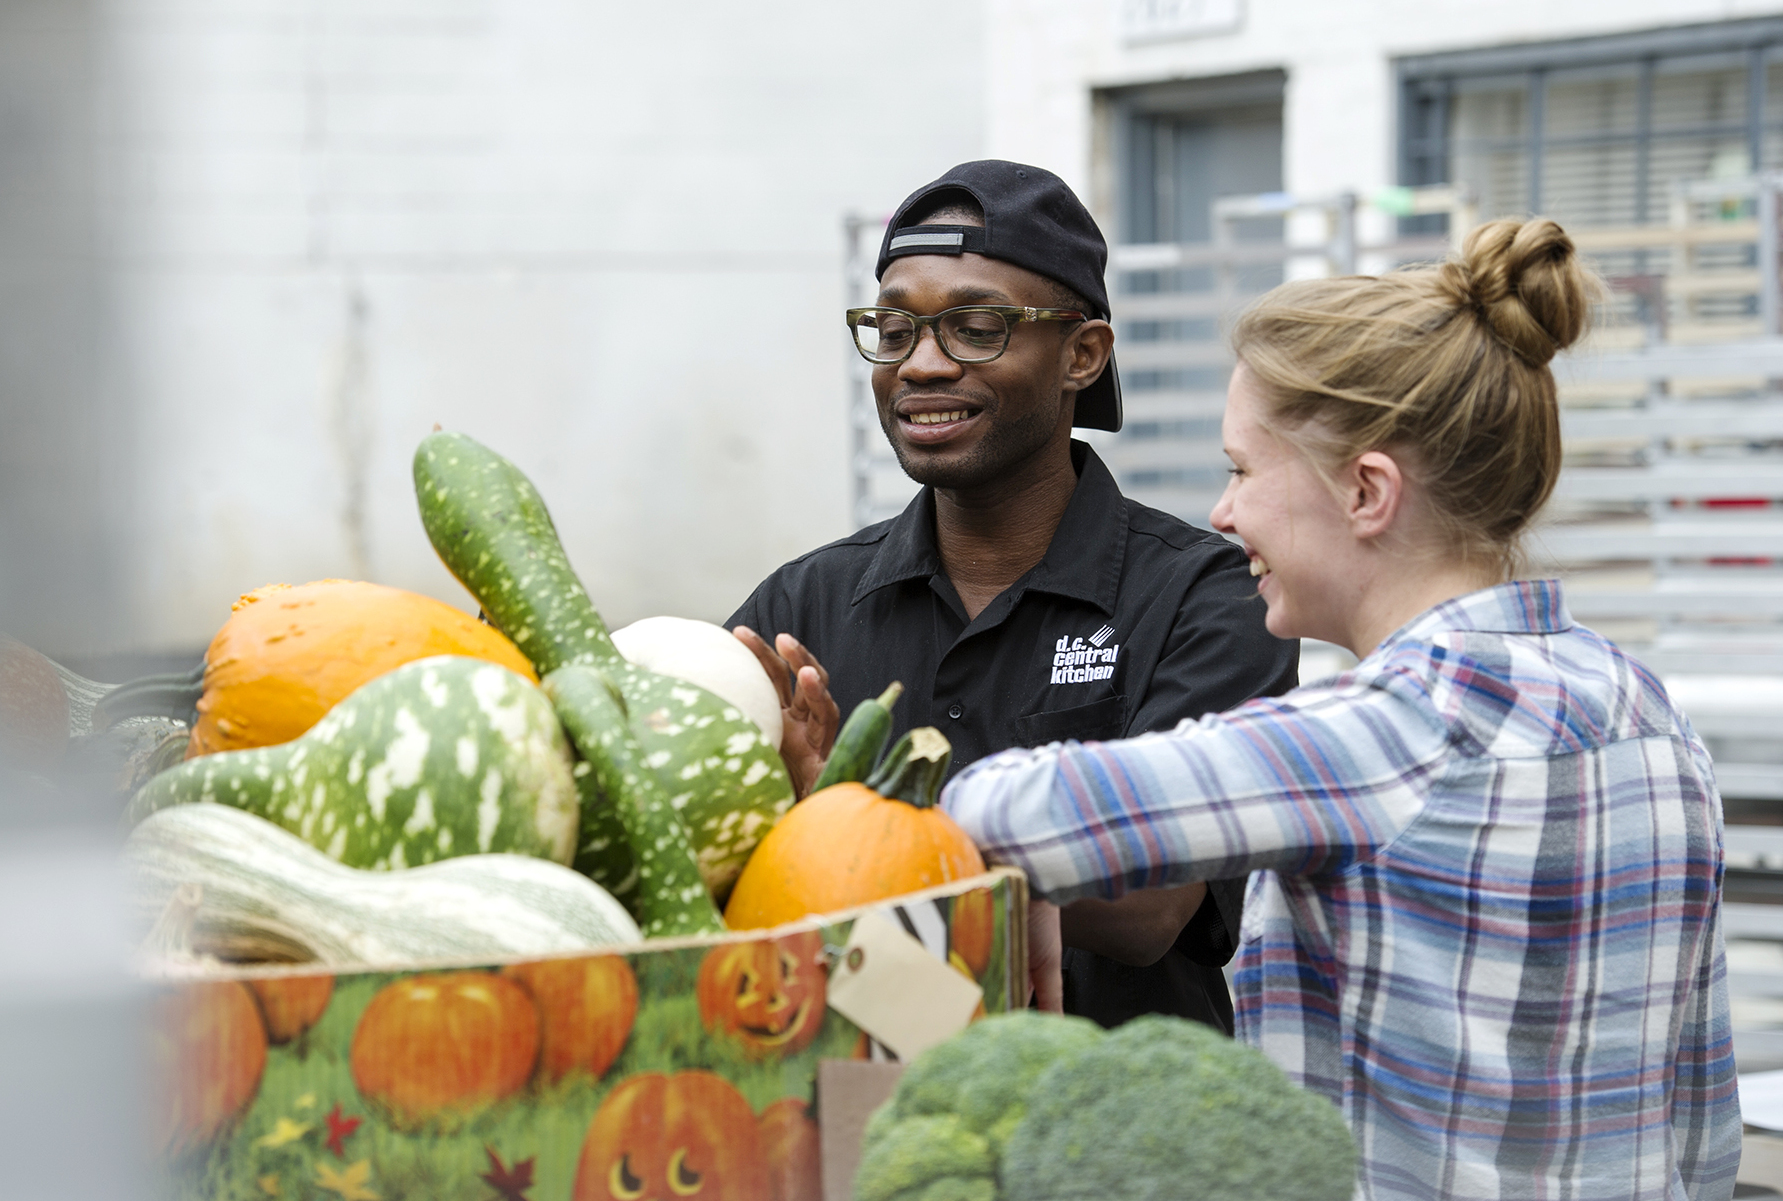 Student volunteers with The Campus Kitchens Project evaluate produce. The initiative gets high-school and college students to scavenge food from cafeterias, grocery stores and farmers' markets, cook it and deliver it to organizations serving low-income people in their communities. Photo: Courtesy of DC Central Kitchen